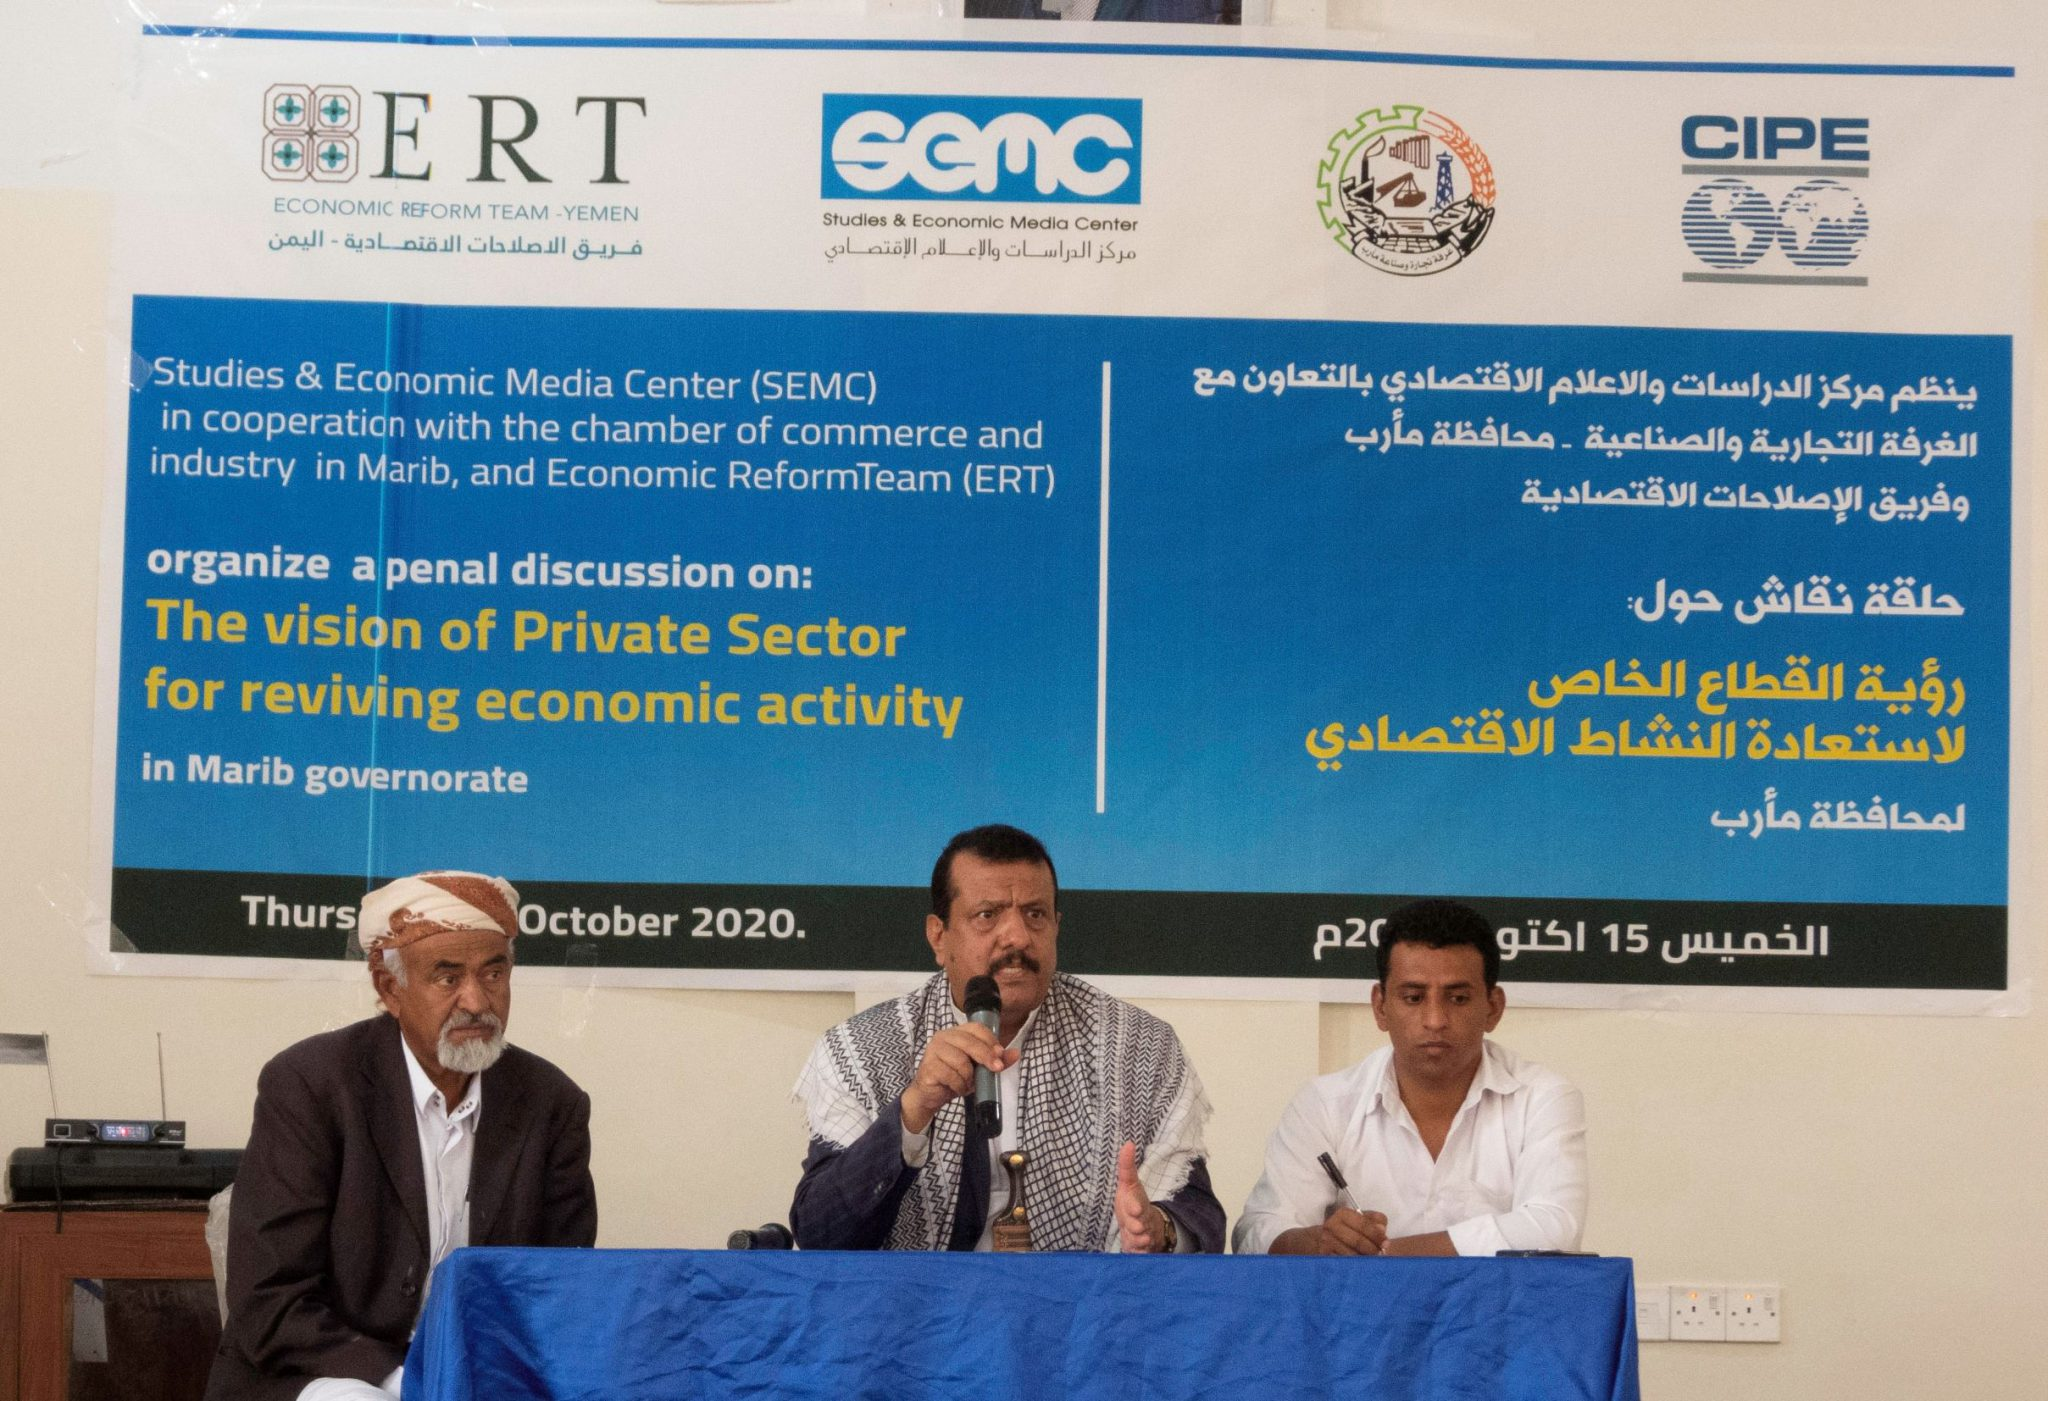 Security and stability are the top priorities.. Local Stirs to recover economic activity in Yemeni governorates